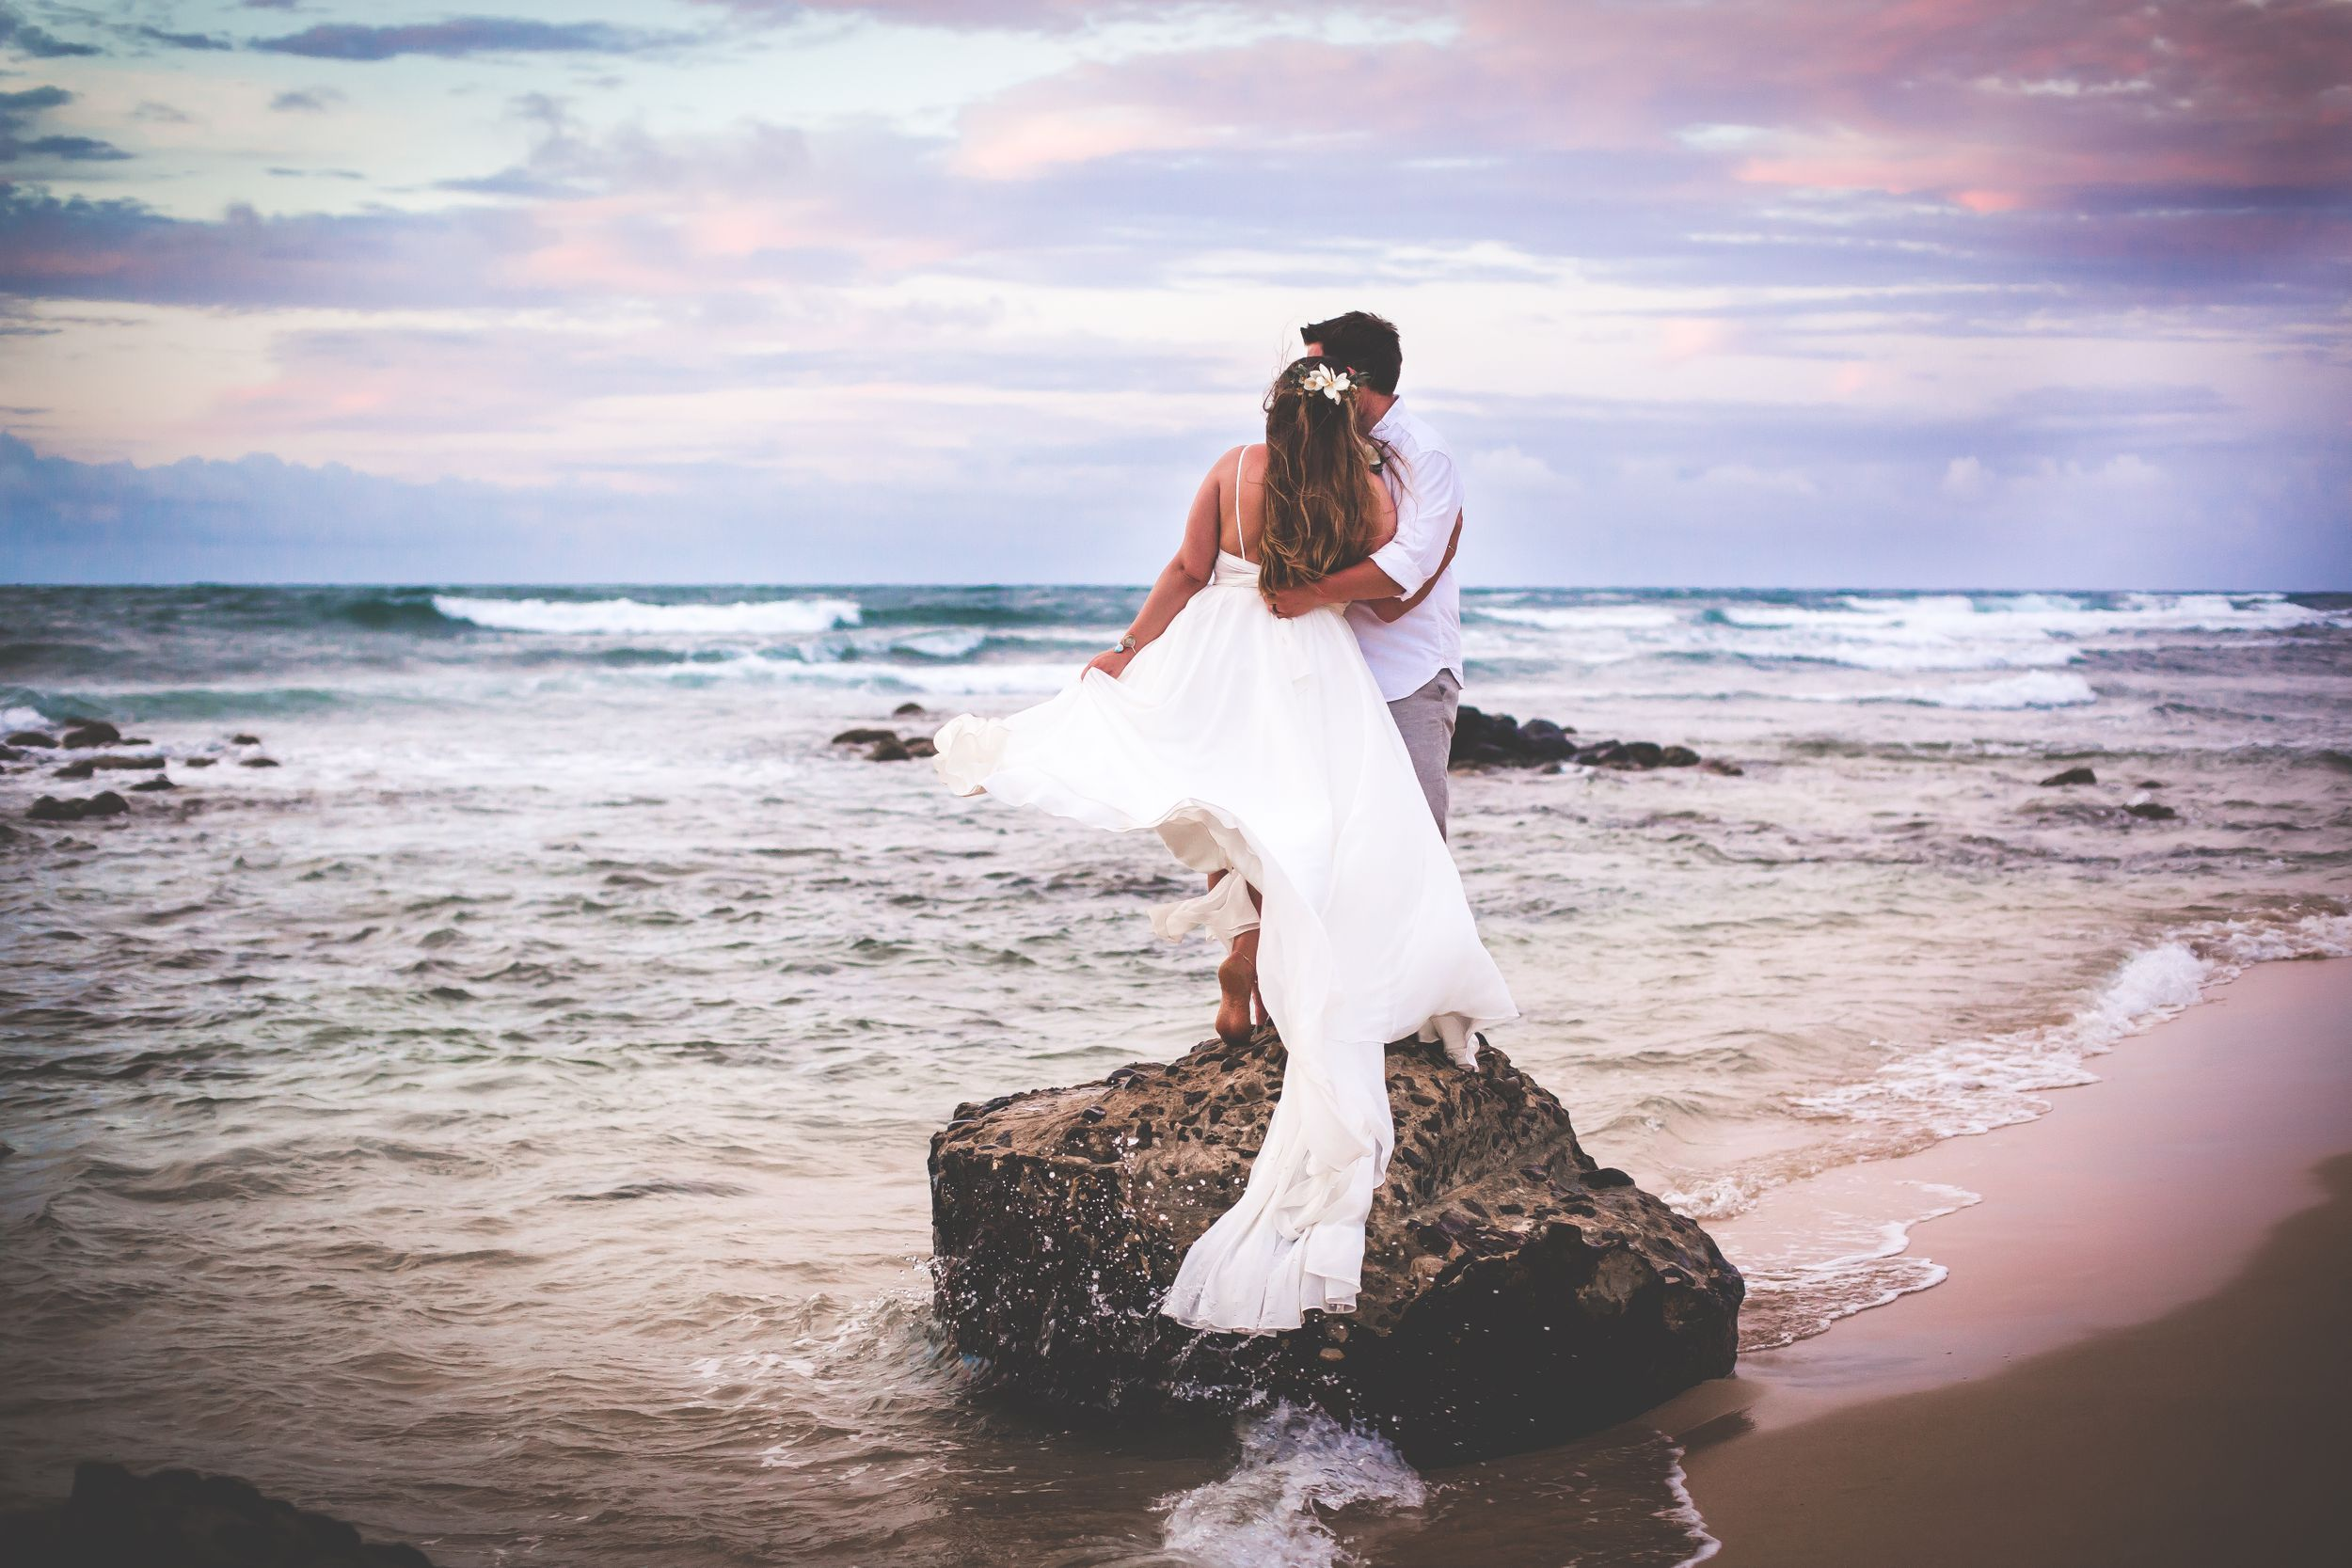 Bride and groom standing on a large rock in the ocean with a pastel sunset. They are embracing and looking at the water.